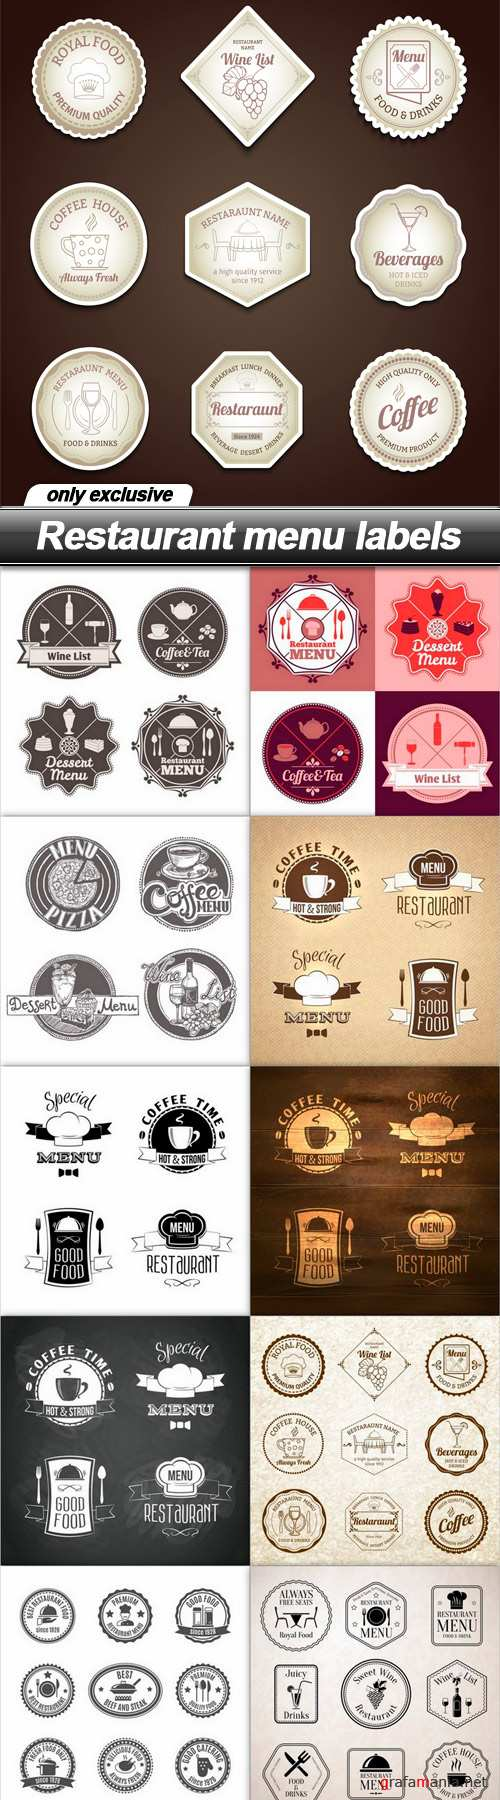 Restaurant menu labels 2 - 11 EPS